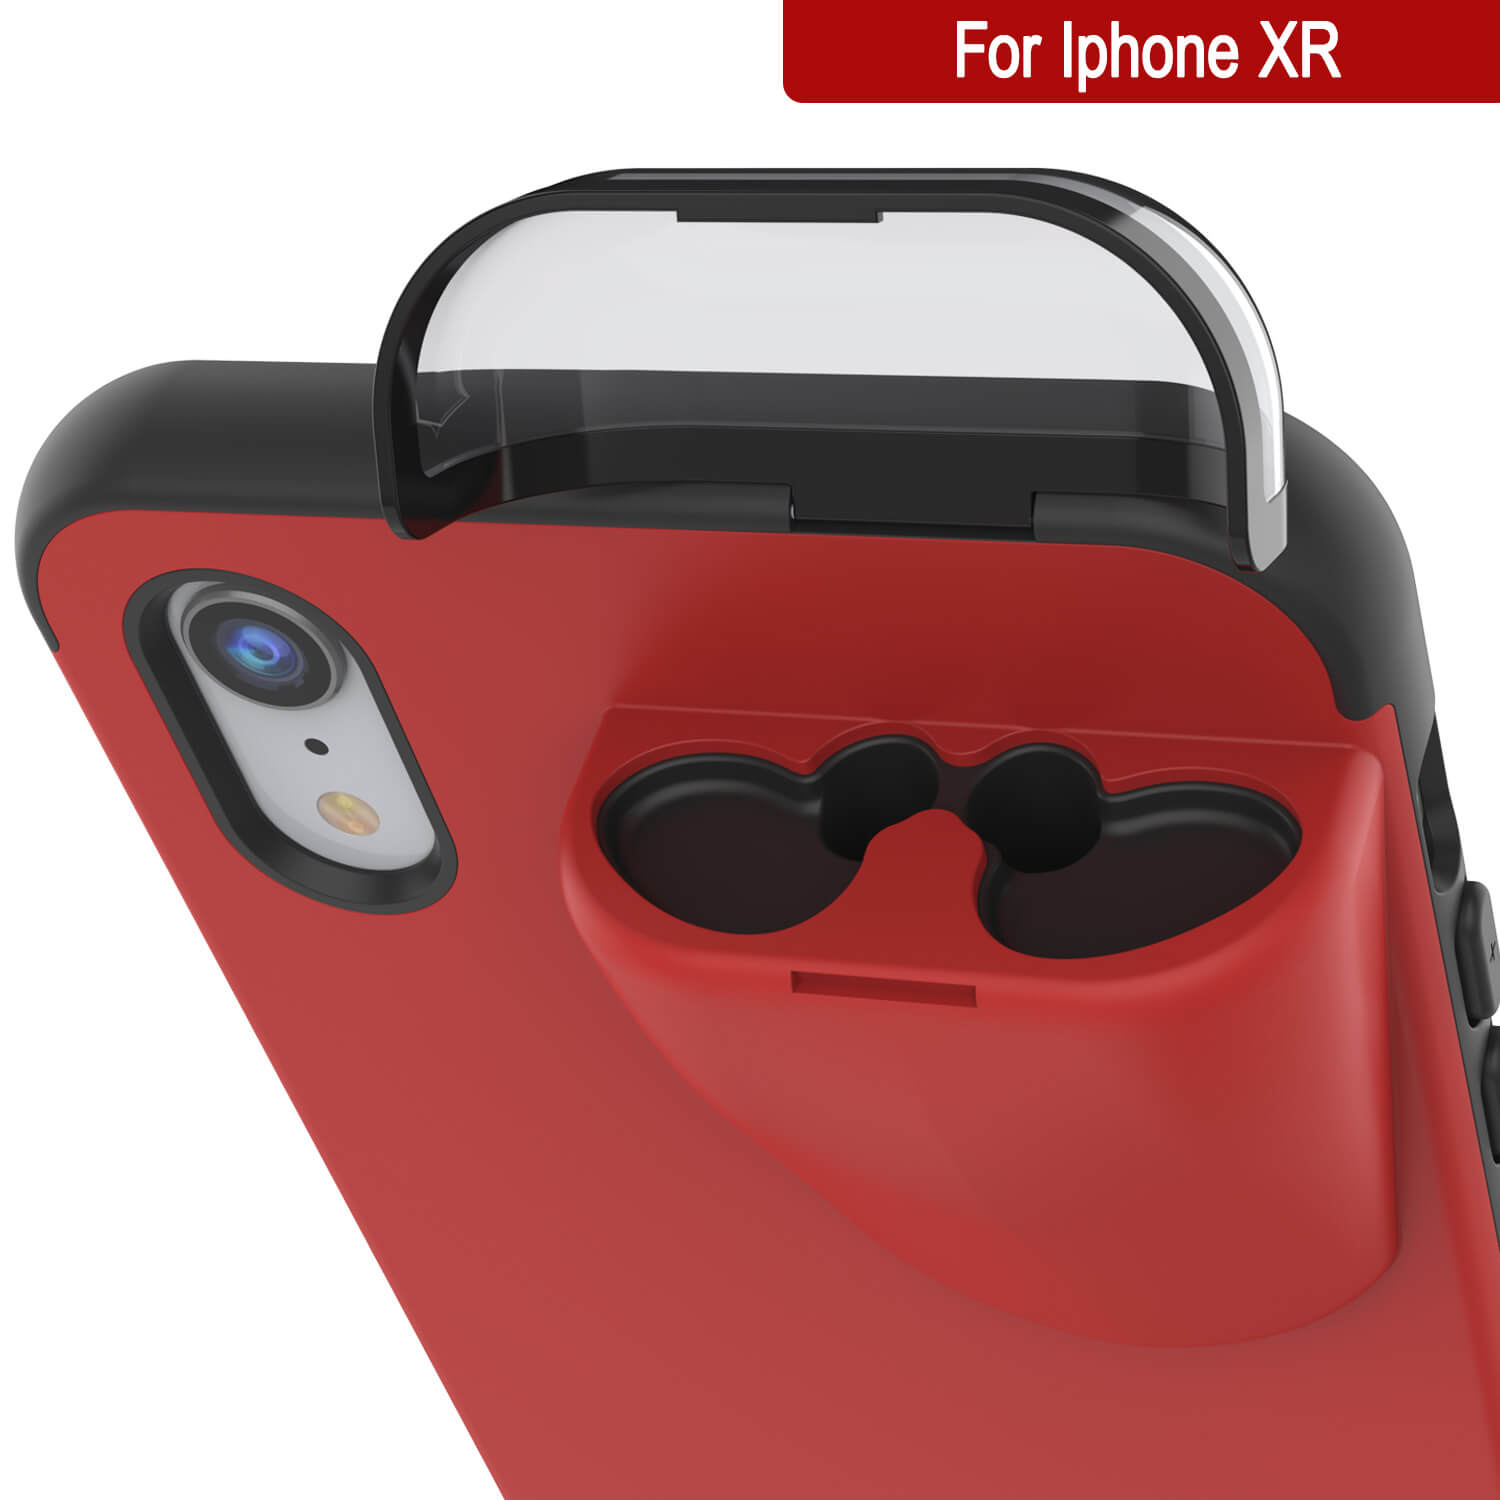 "Punkcase iPhone XR Airpods Case Holder (TopPods Series) | Slim & Durable 2 in 1 Cover Designed for iPhone XR (6.1"") 